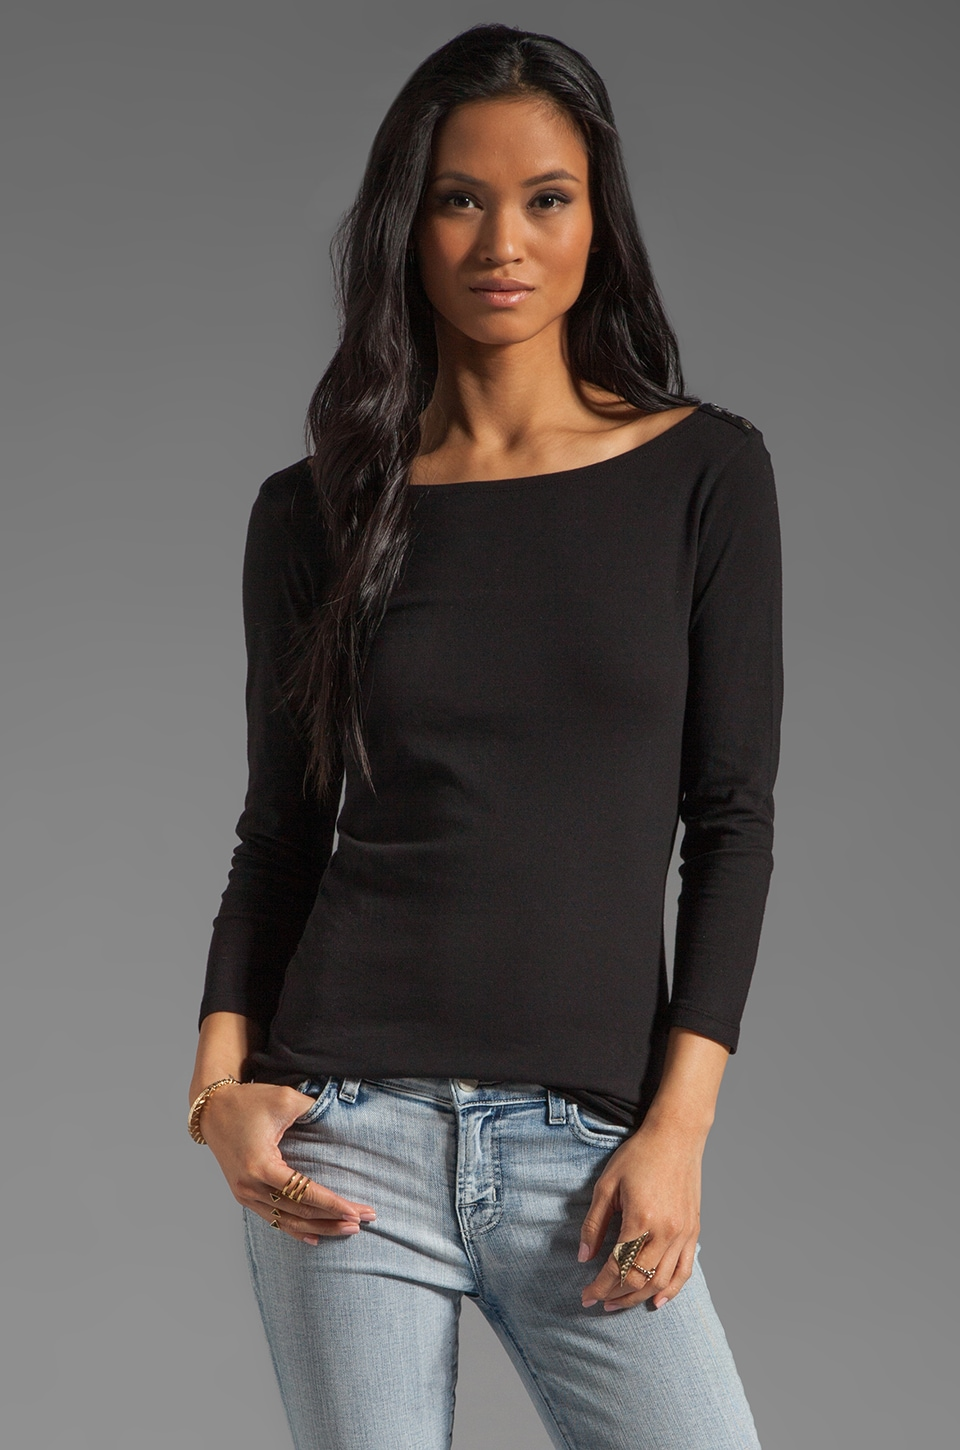 Velvet by Graham & Spencer Essential Jersey Natashya Long Sleeve Tee in Black